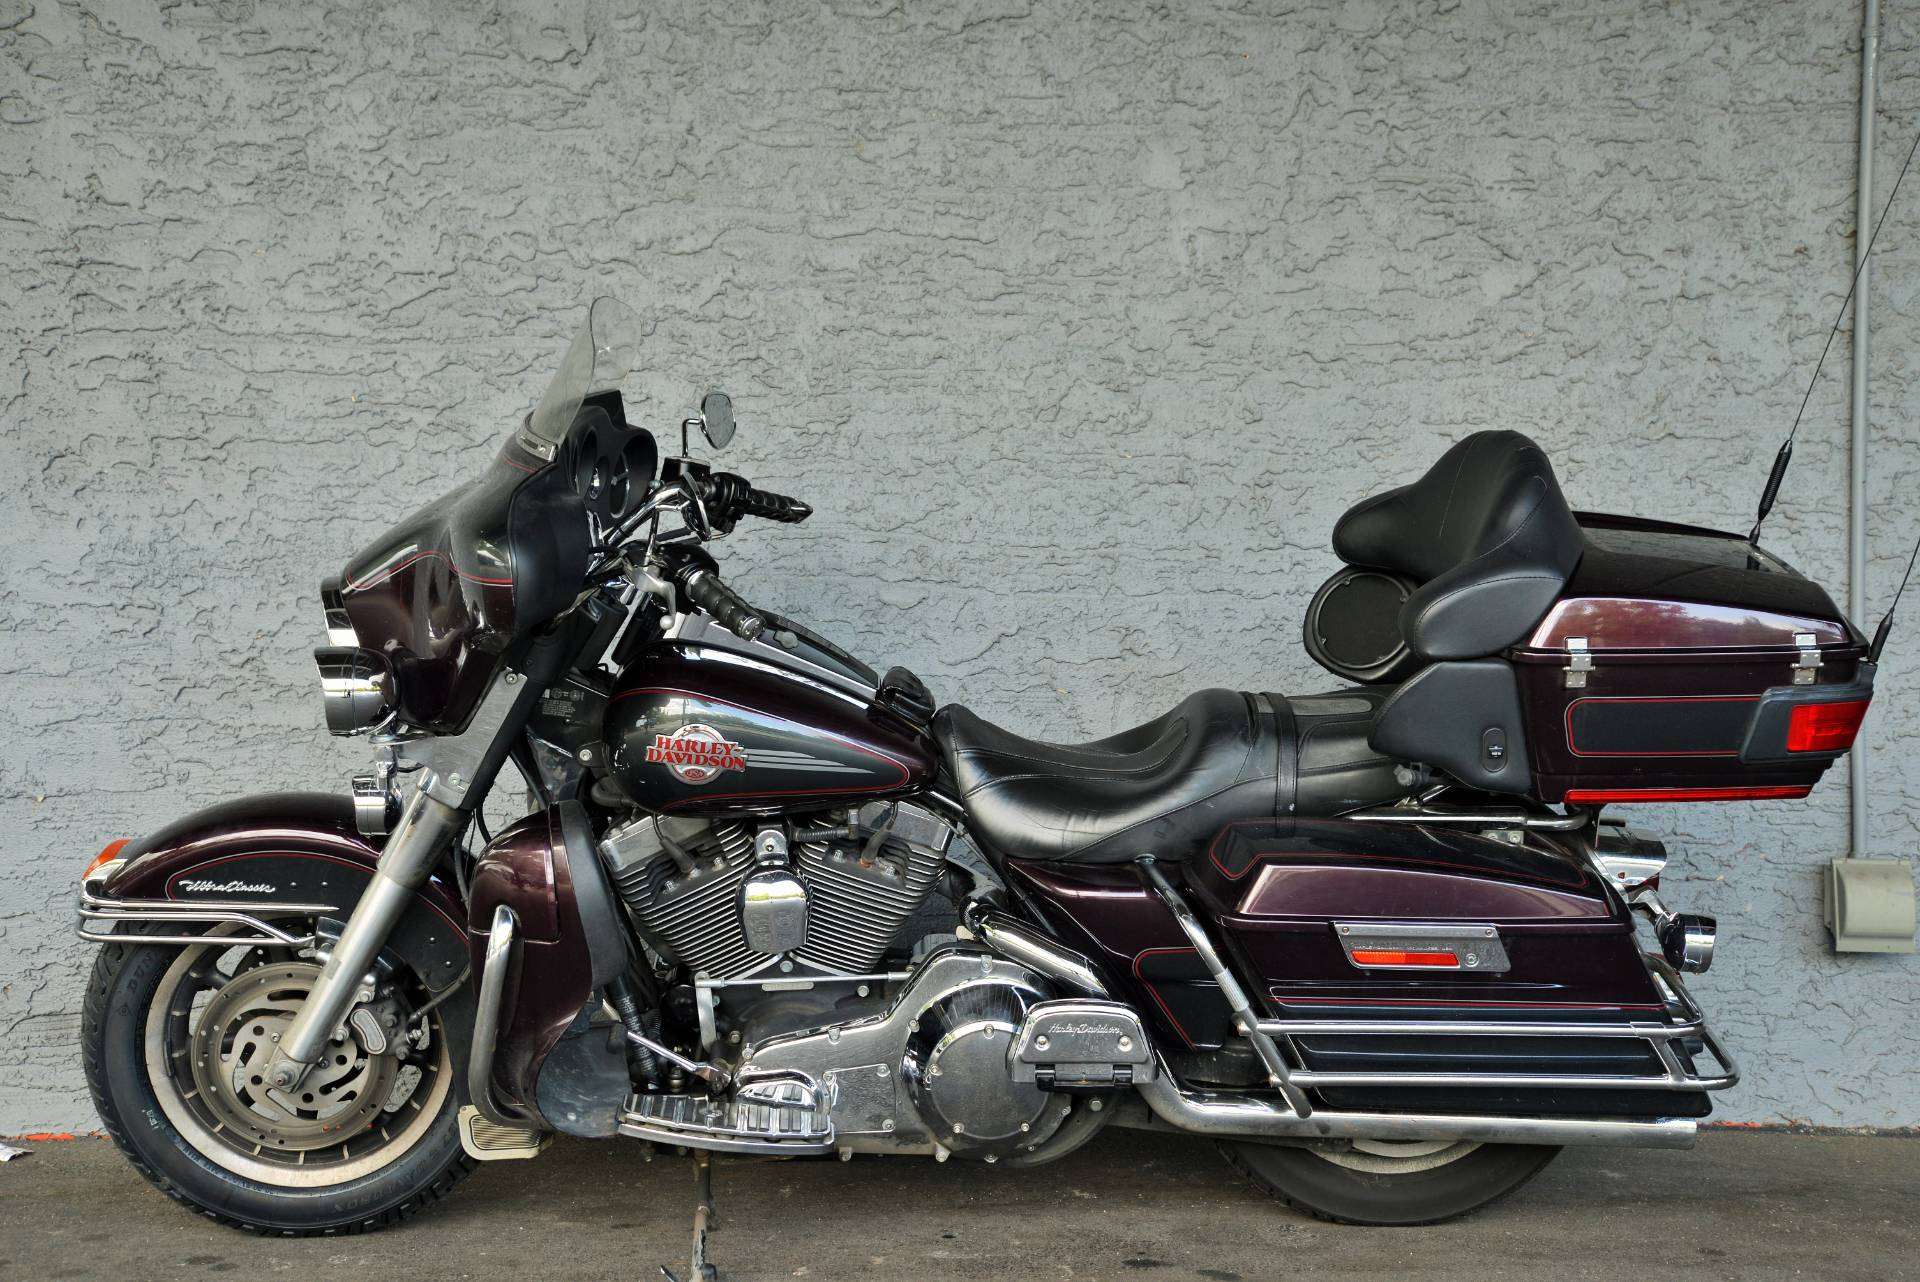 2006 Harley-Davidson ELECTRA GLIDE ULTRA in Lakewood, New Jersey - Photo 12